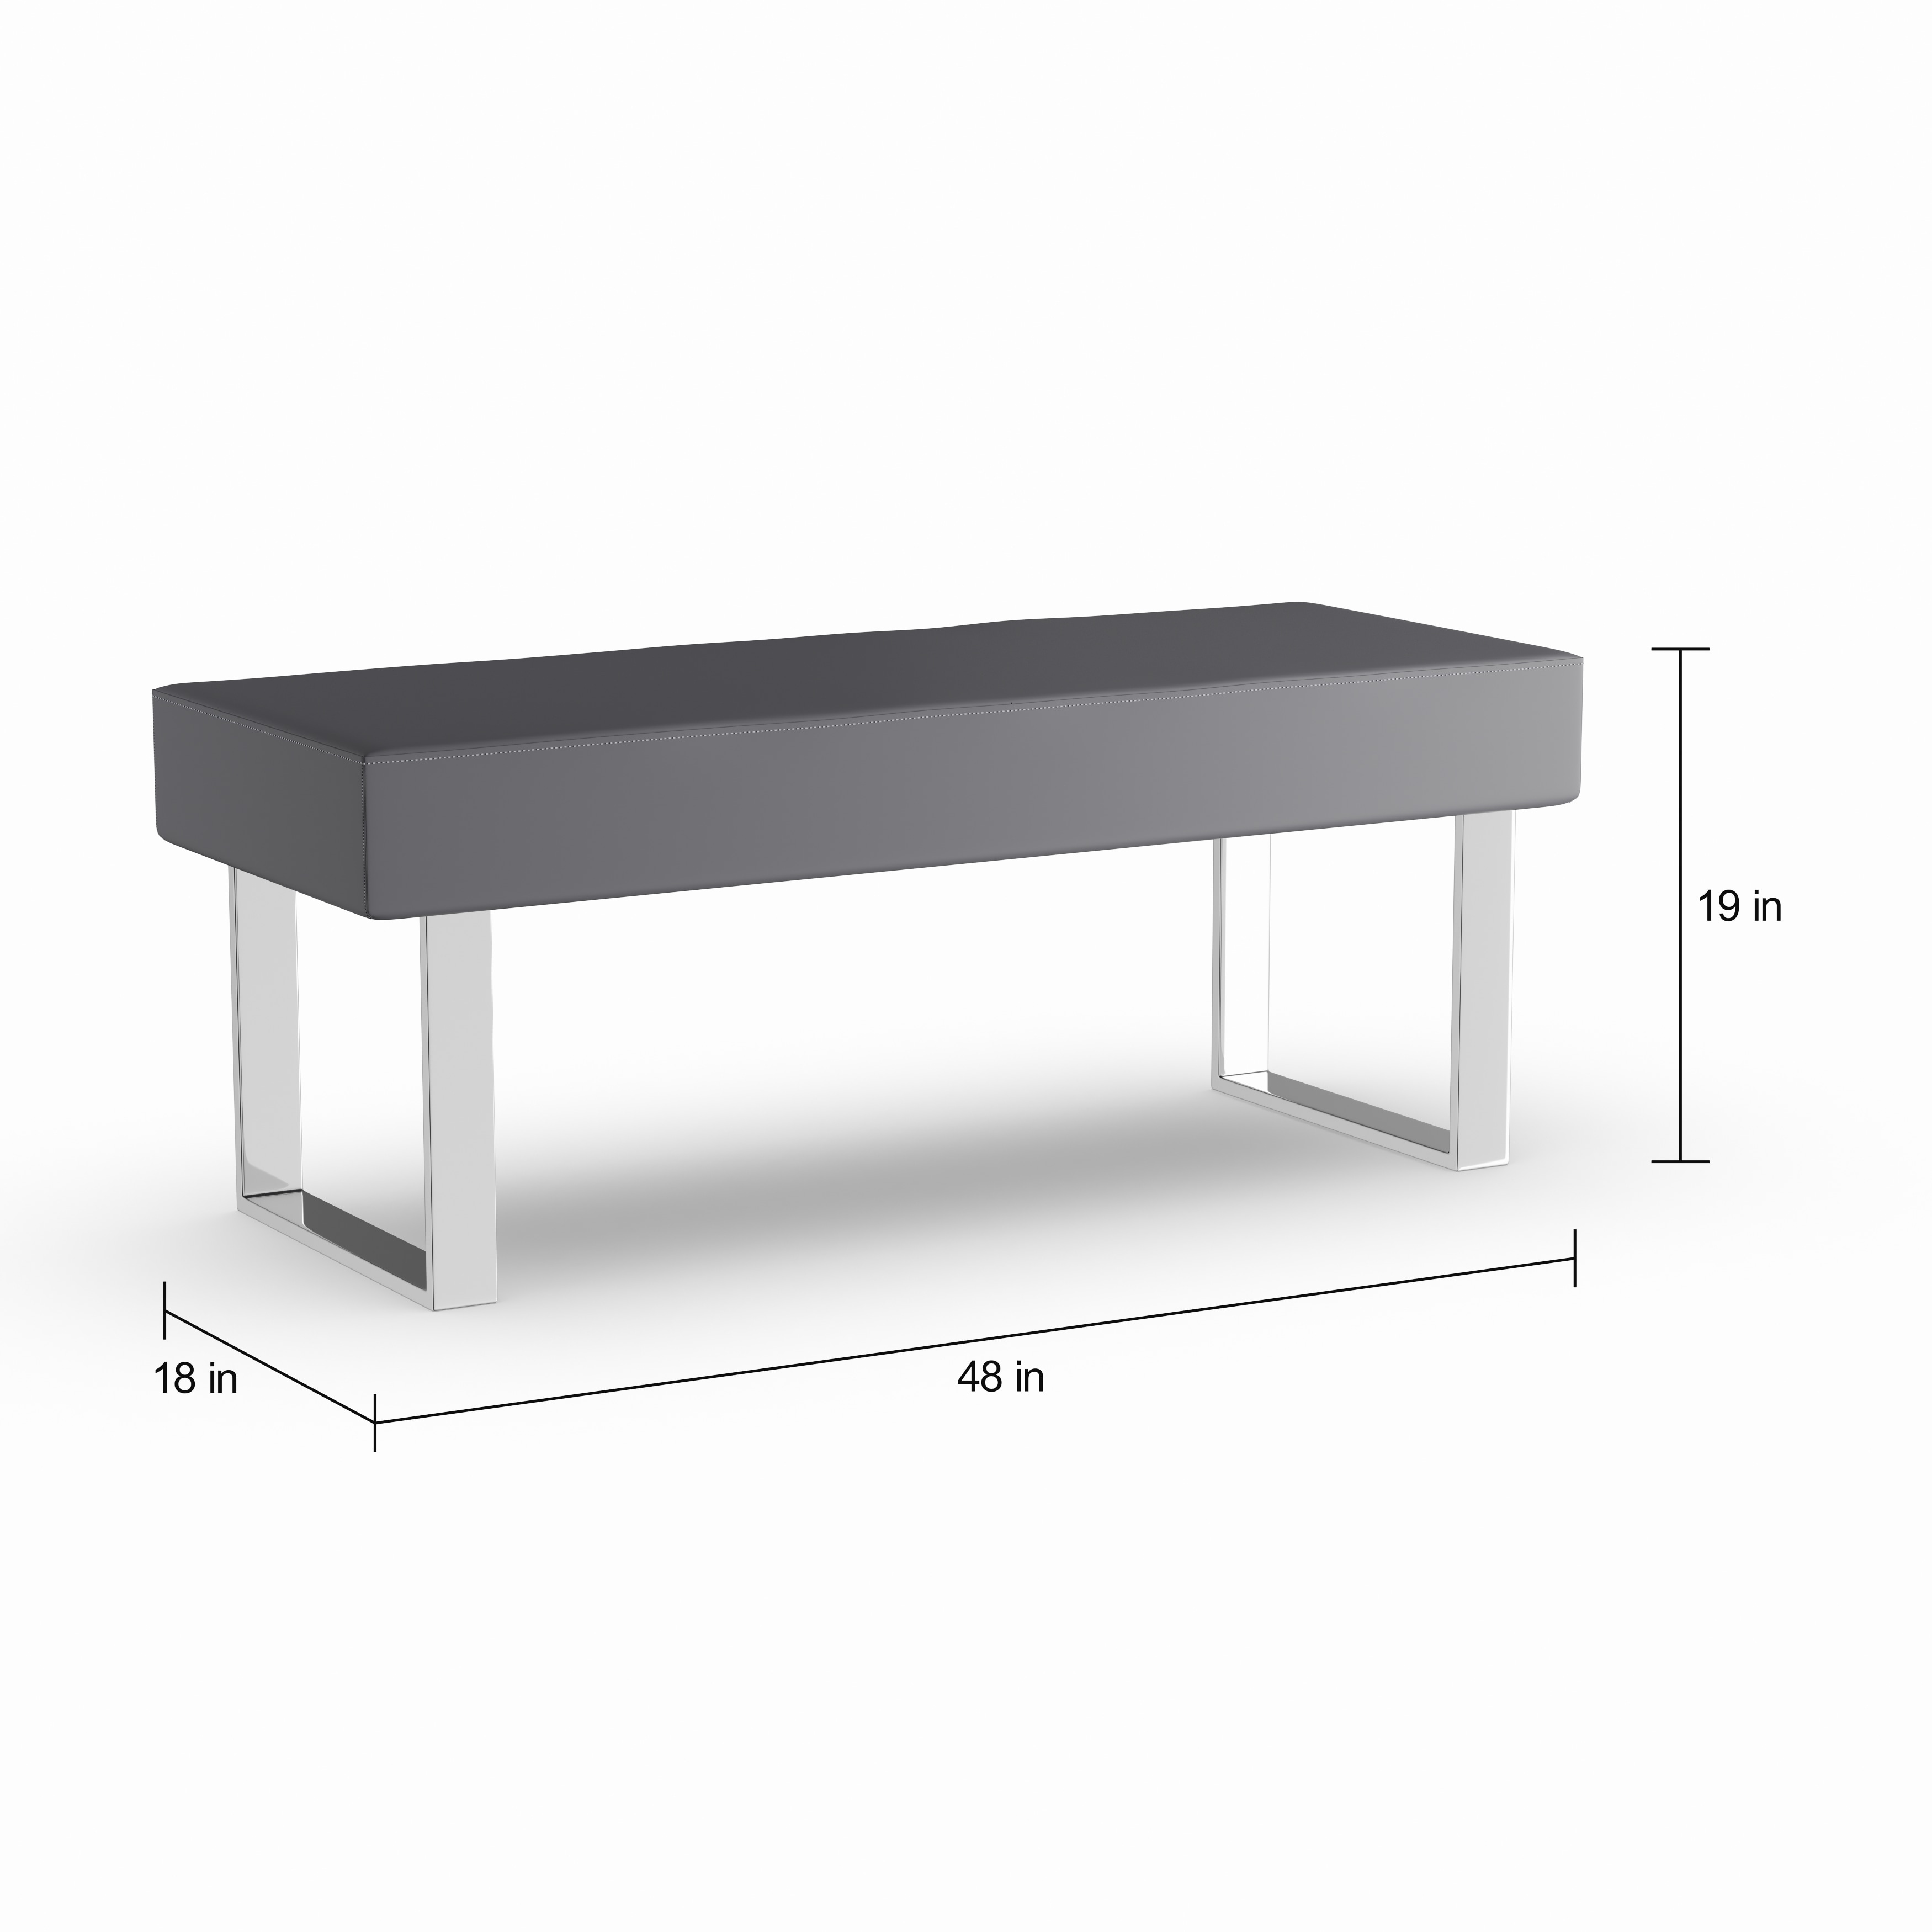 Shop Oliver U0026 James Natalia Grey Faux Leather Dining Bench   On Sale   Free  Shipping Today   Overstock.com   20882646